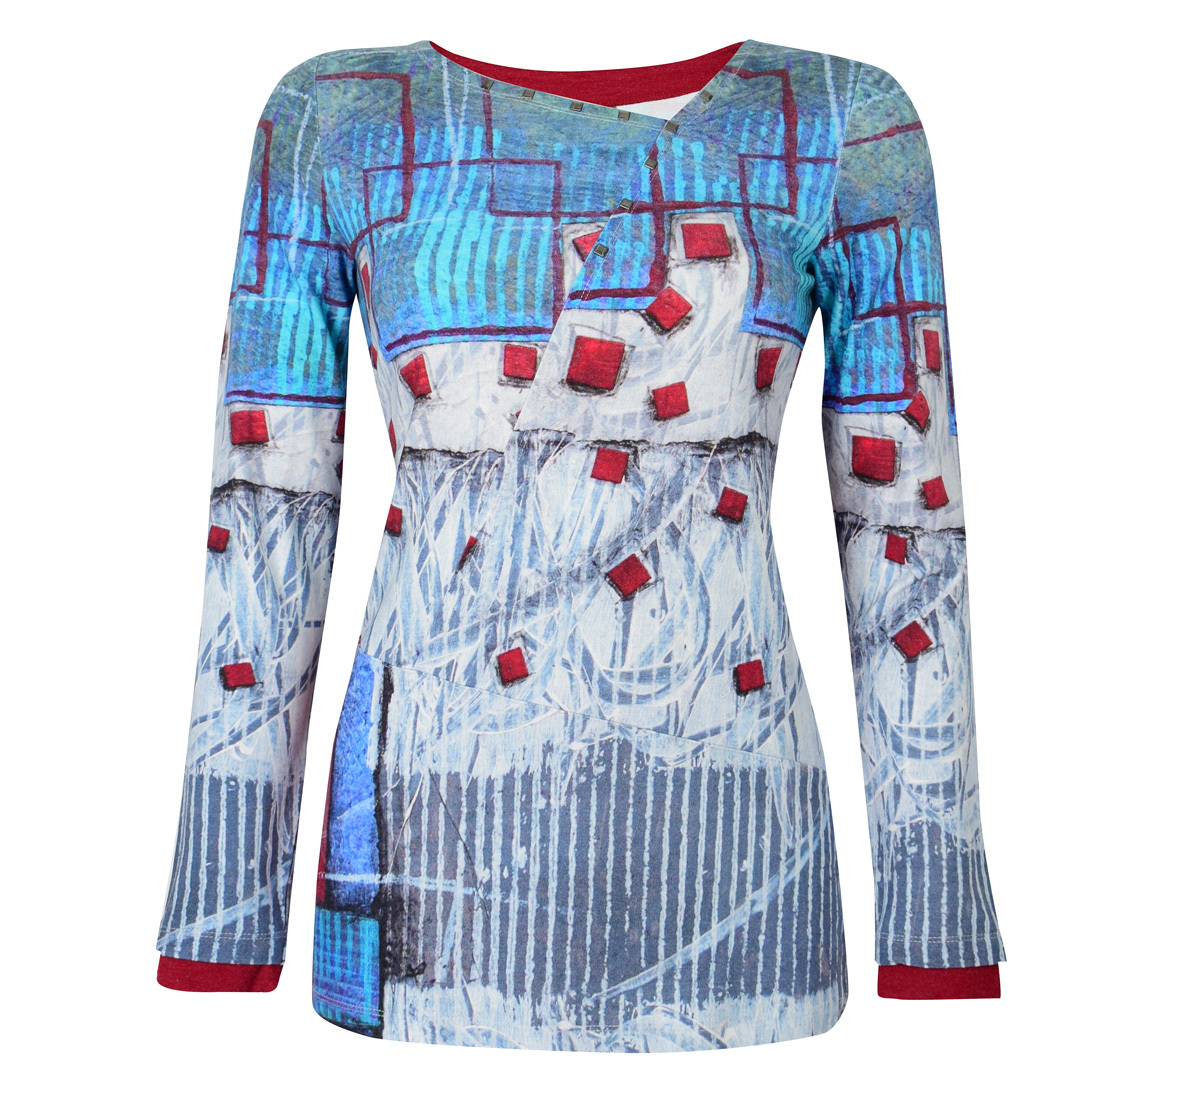 Simply Art Dolcezza: Asymmetrical Spiritually Square Uneven Abstract Art Tunic SOLD OUT Dolcezza_SimplyArt_59661